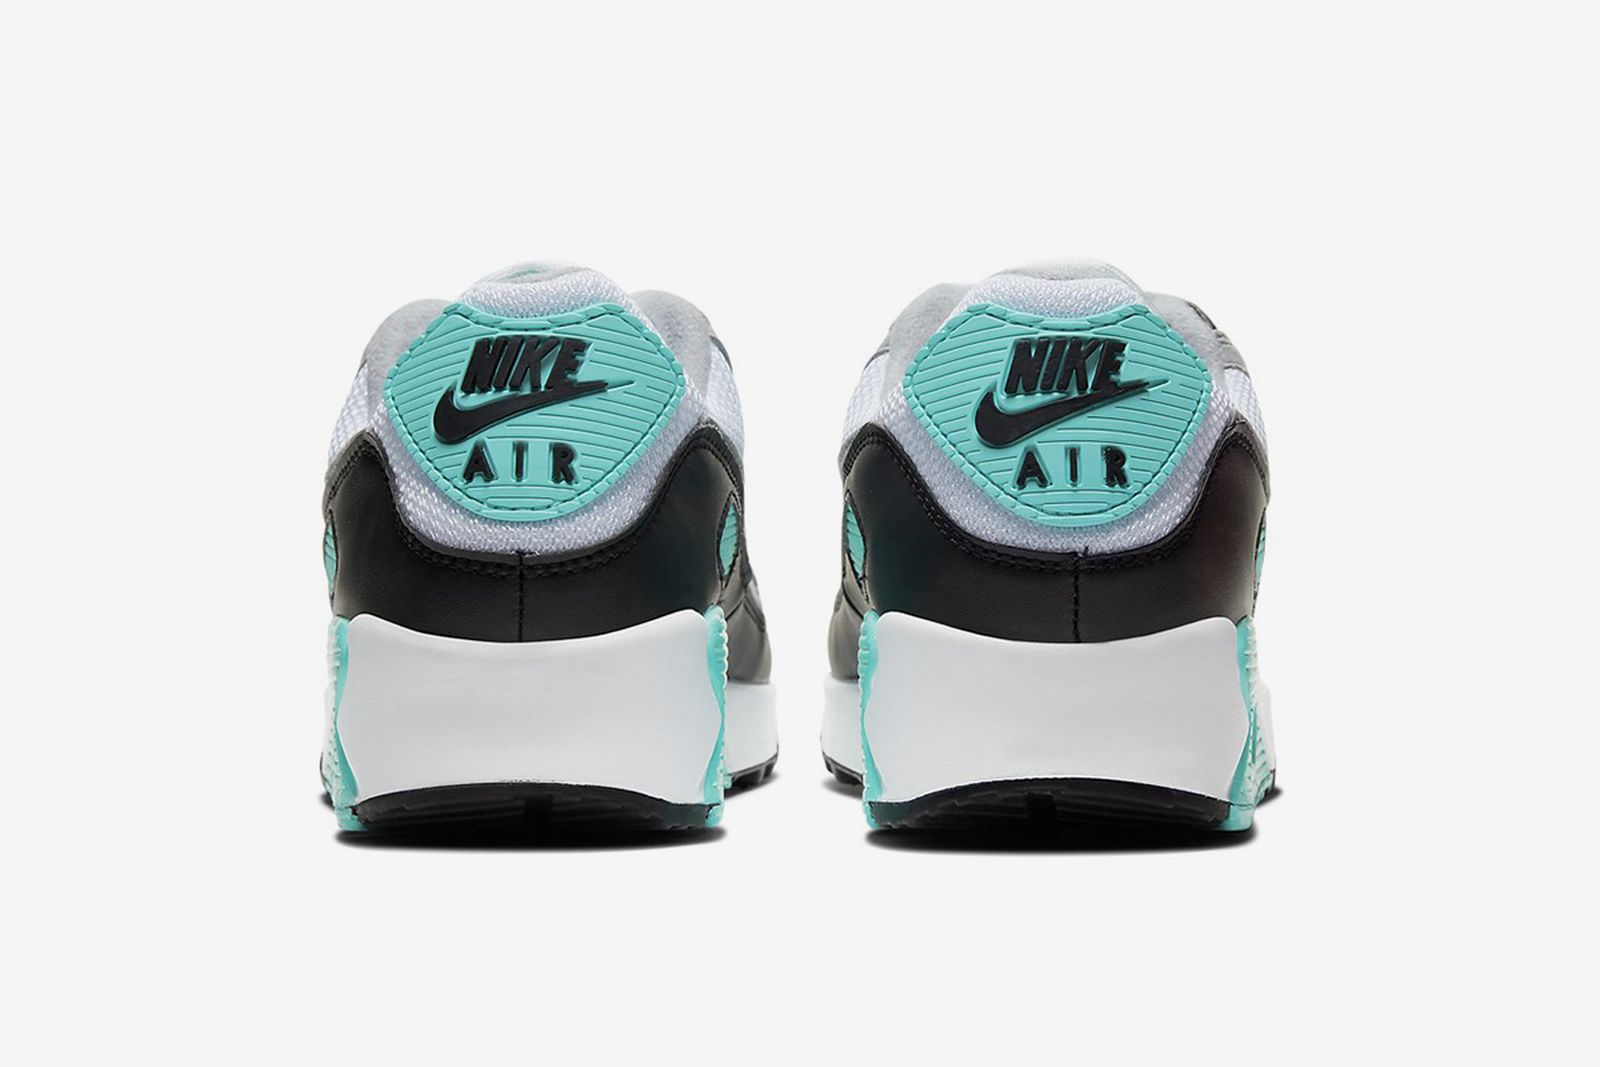 nike-air-max-90-30th-anniversary-colorways-release-date-price-1-05